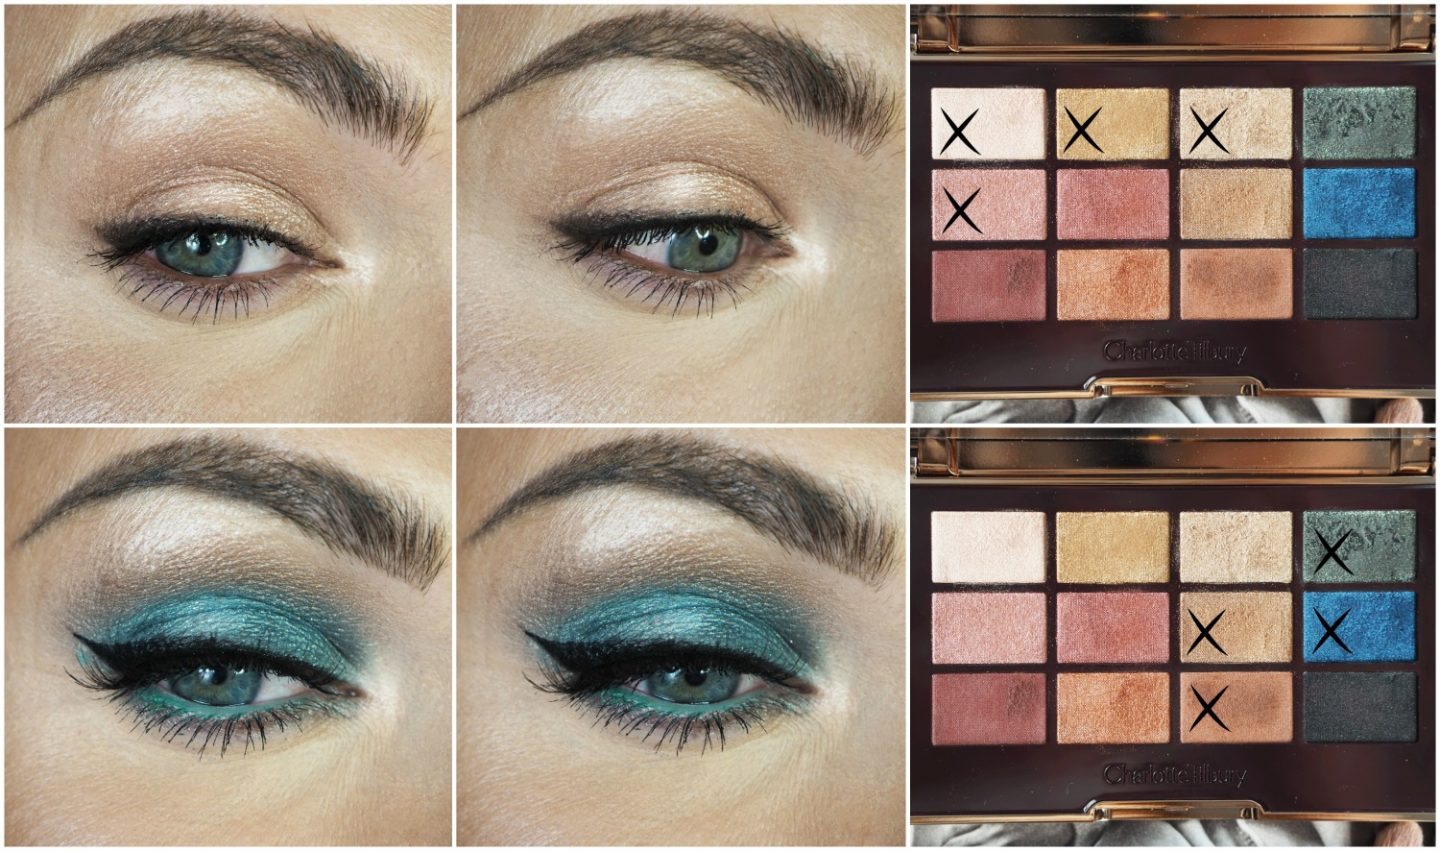 Charlotte Tilbury icons eyeshadow palette eye makeup tutorial